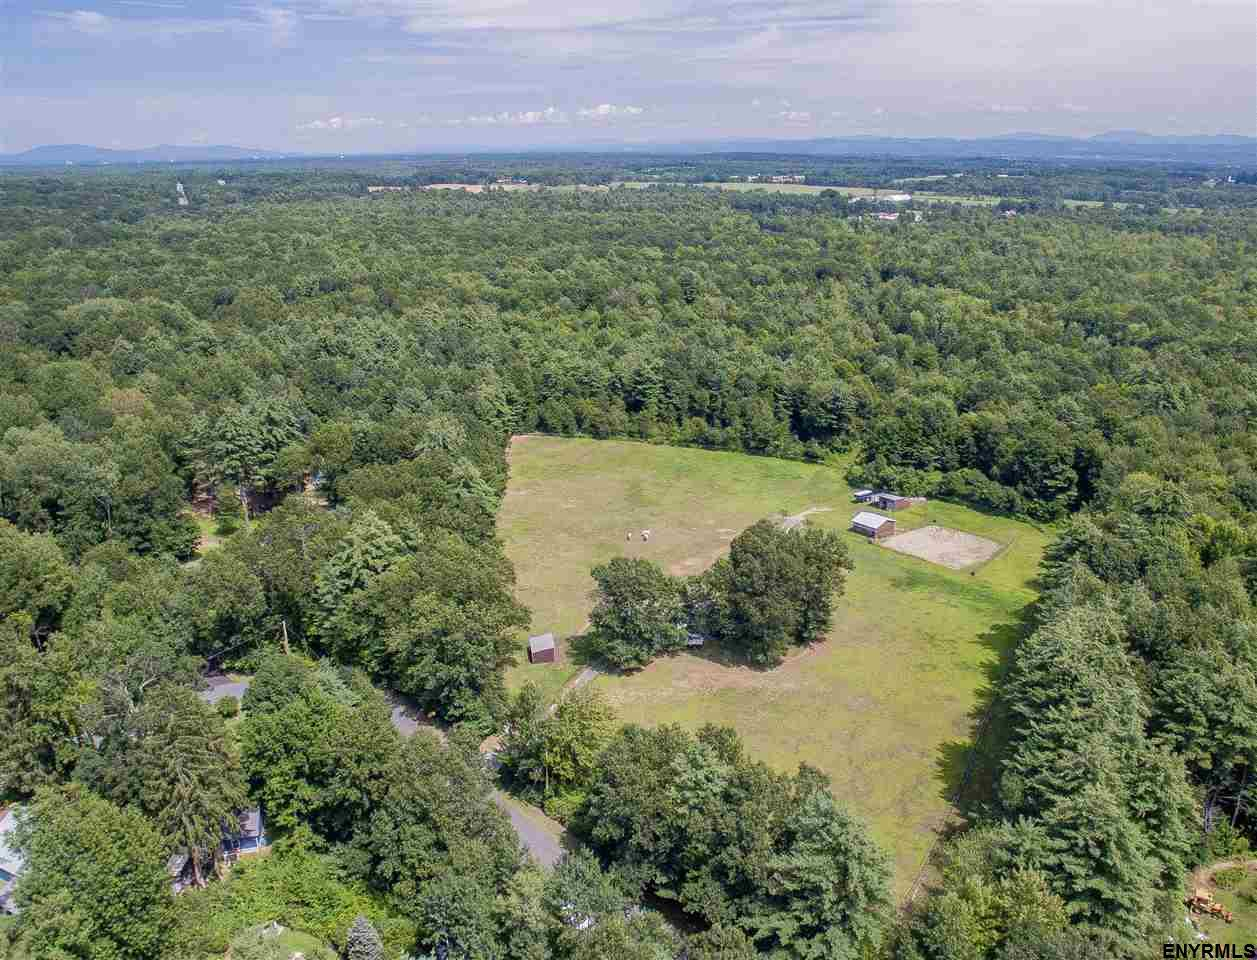 154 blanchard road in moreau ny is a 3 bedroom 2 bath horse farm for sale on 27 acres